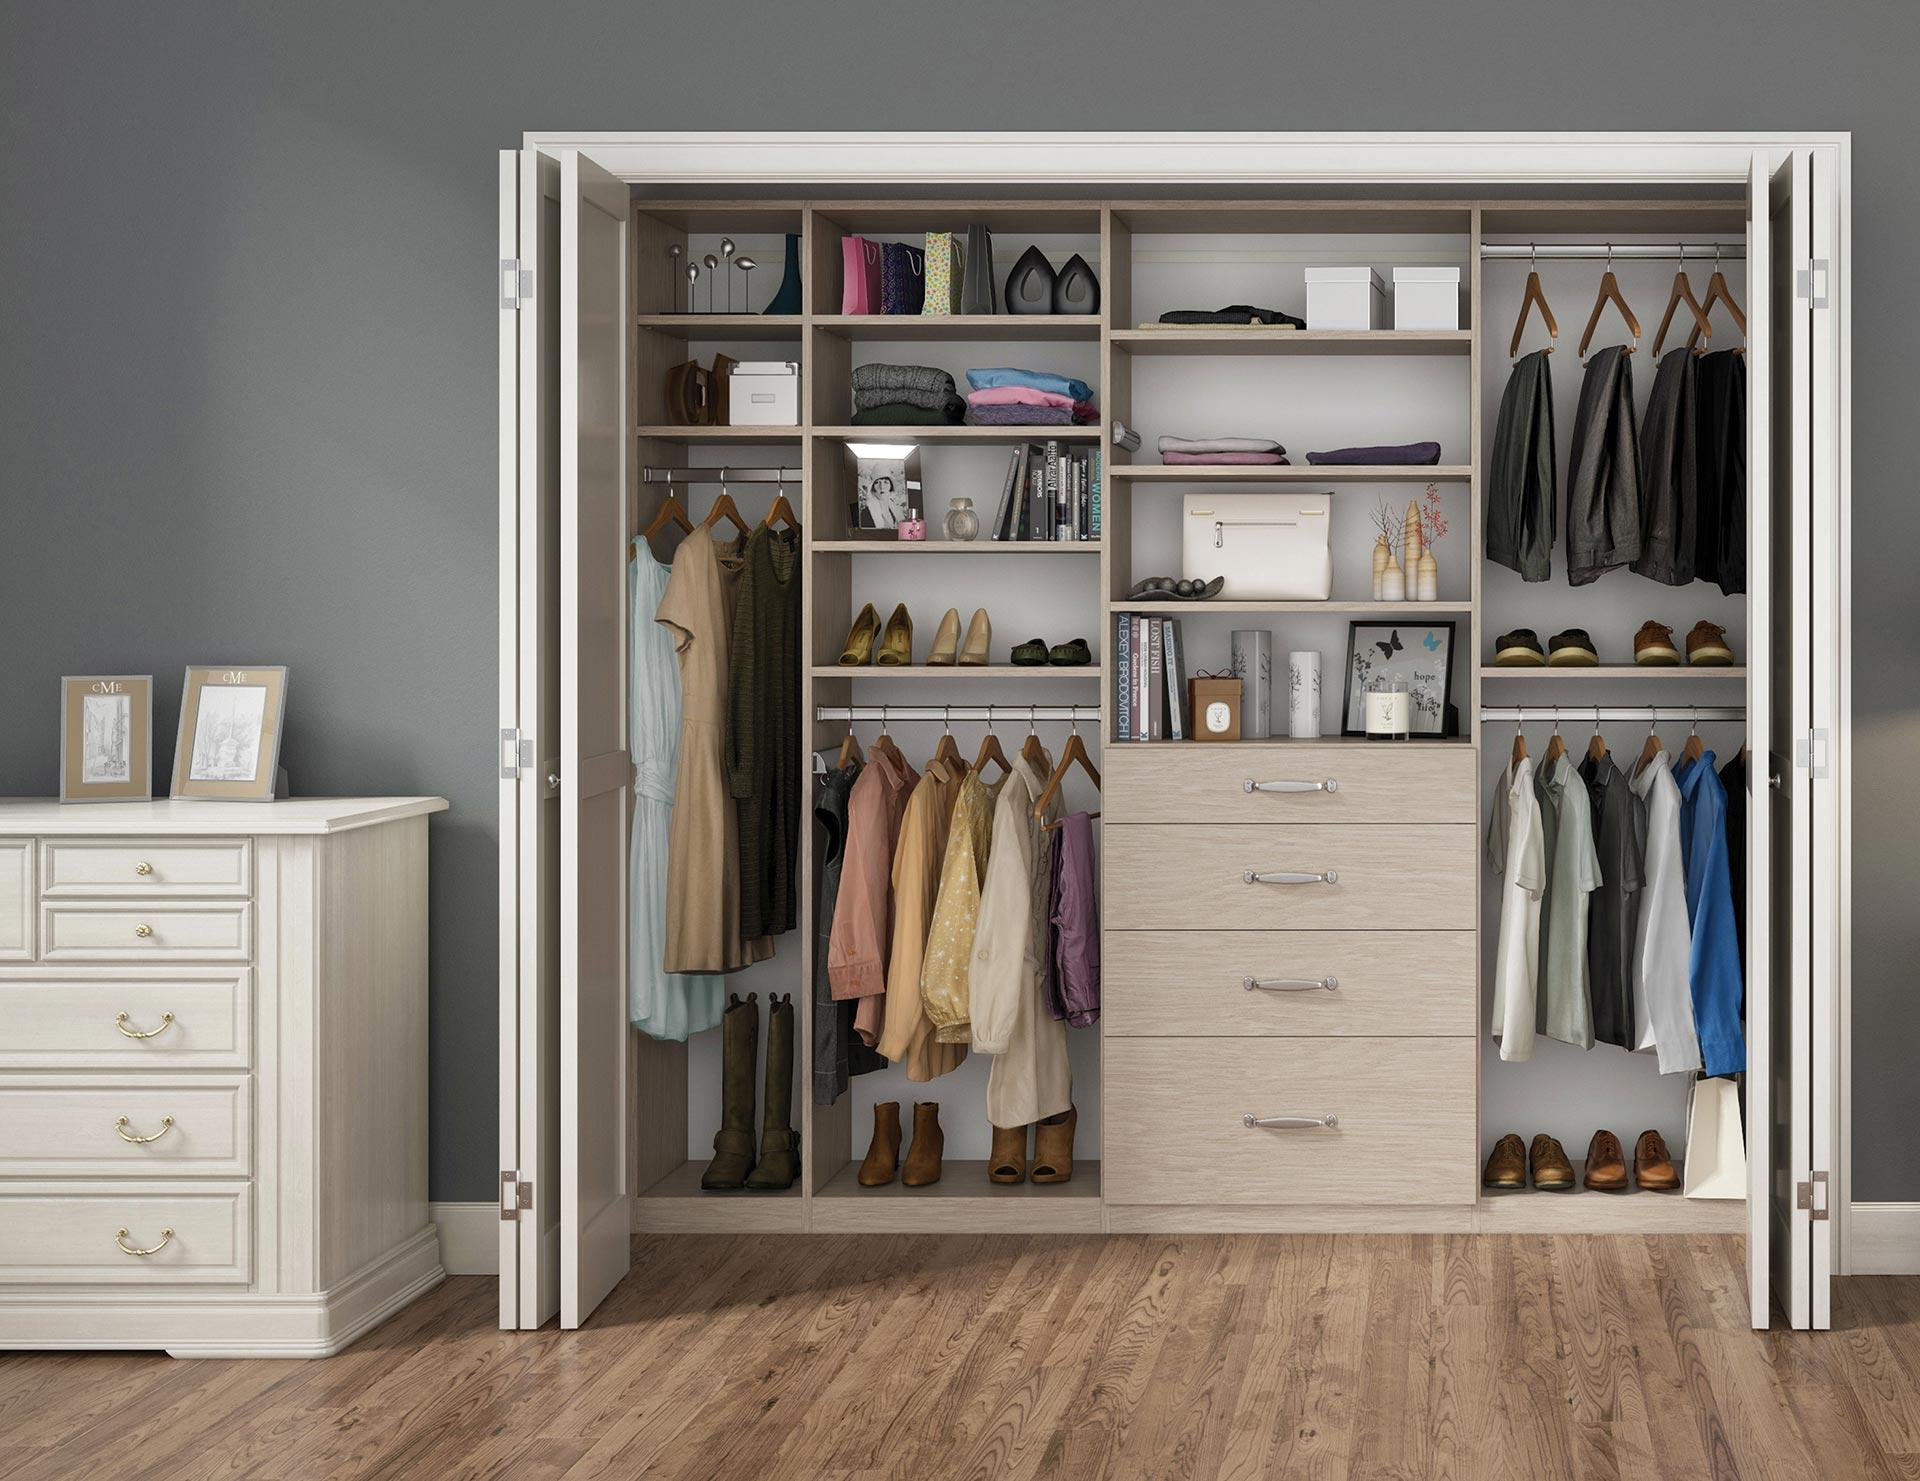 Reach in closets designs ideas by california closets for Decor systems